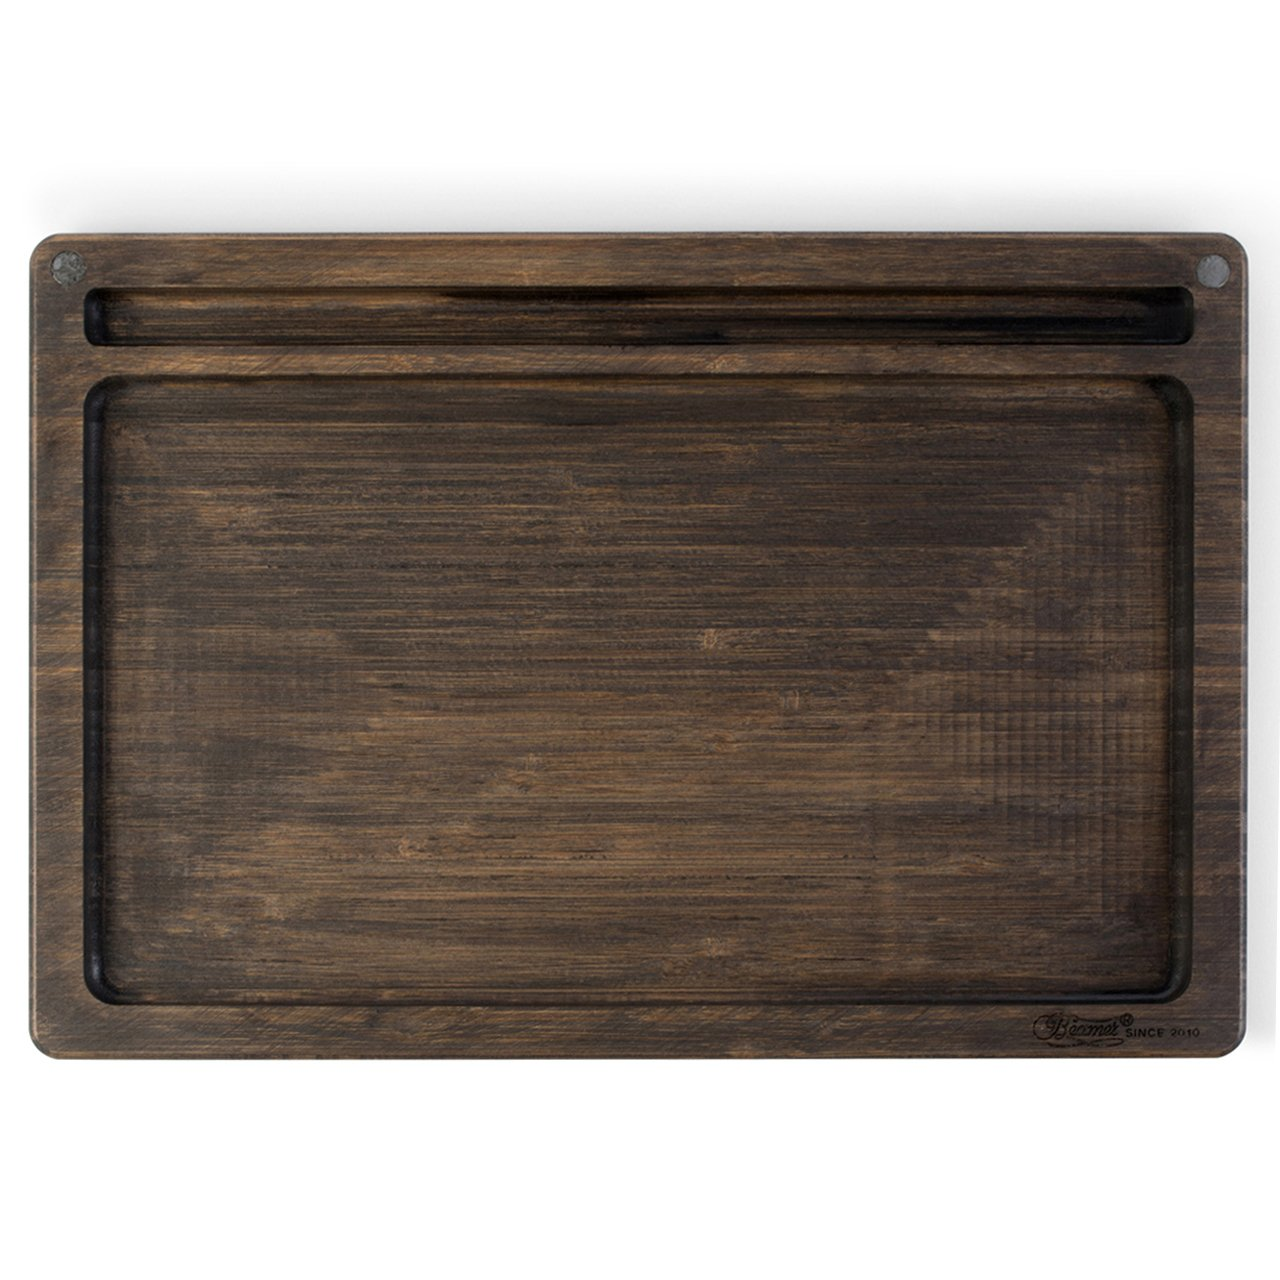 Beamer Ace All-Natural Bamboo Rolling Tray - Dark Finish - 14 X 9.5 inch